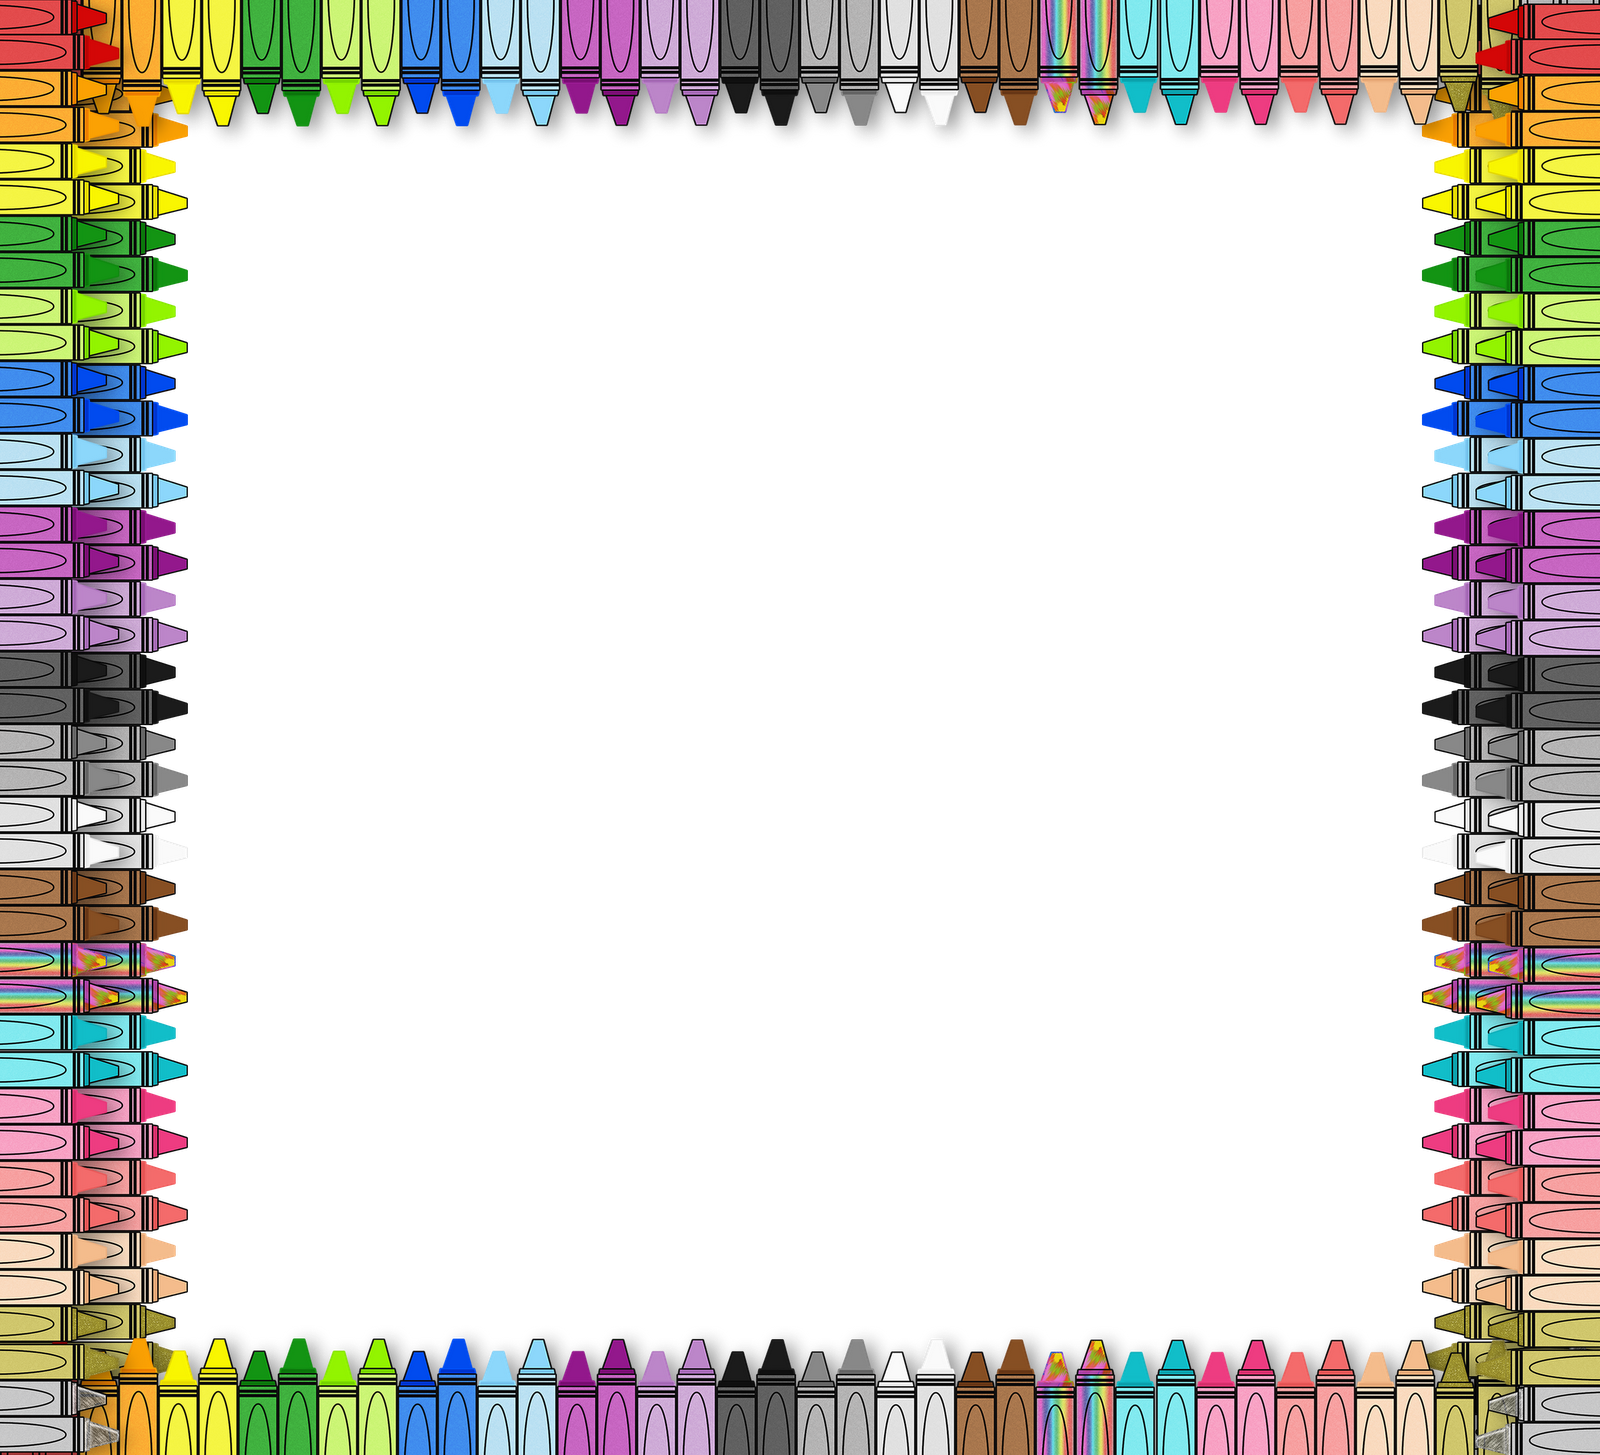 Free Crayon Border Png, Download Free Clip Art, Free Clip.